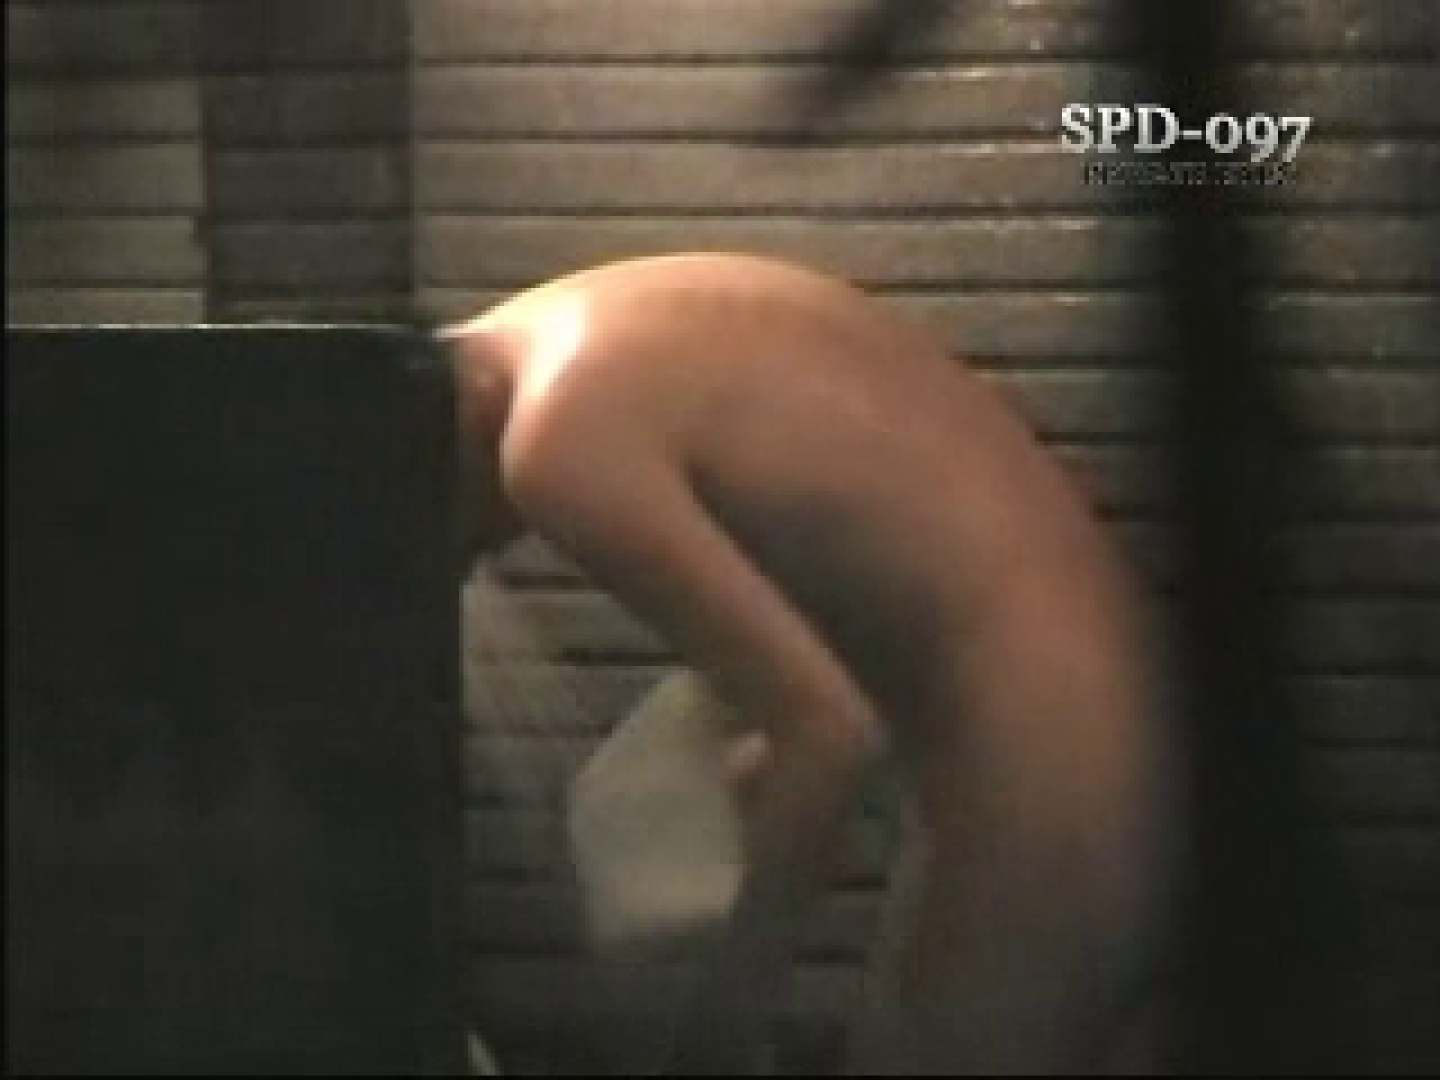 SPD-097 柔肌乙女 2 巨乳 セックス画像 104pic 57